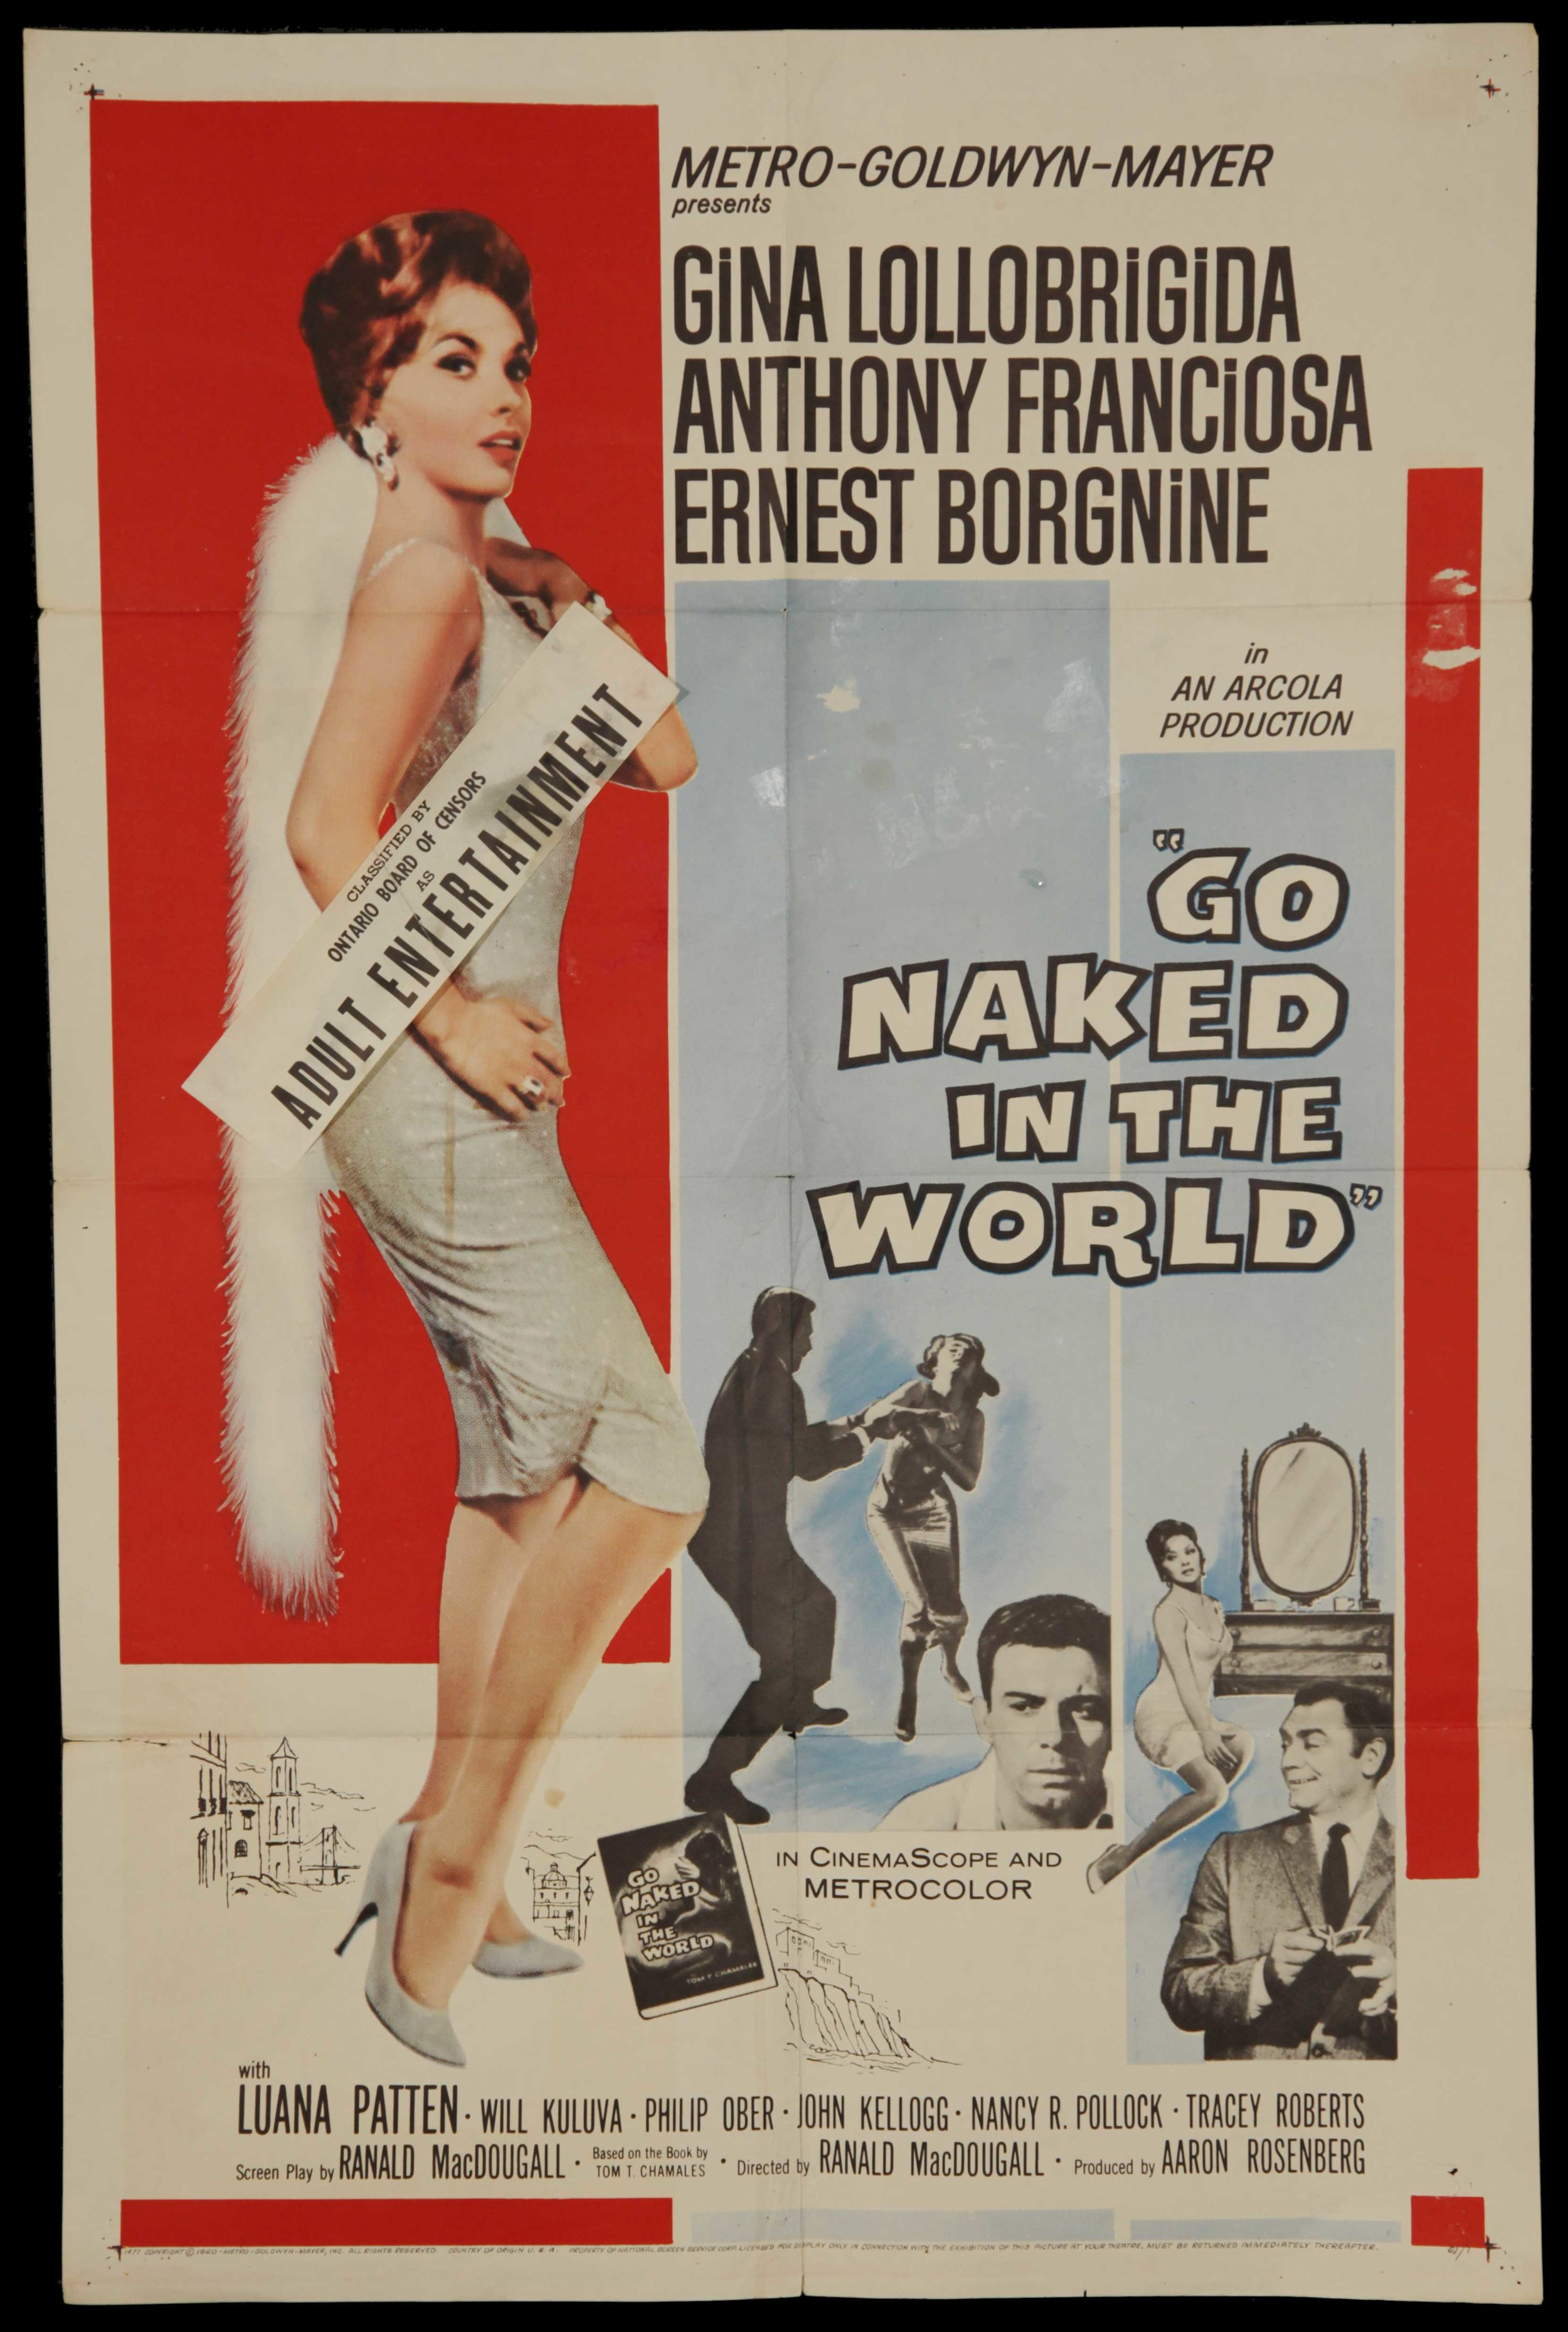 Go Naked In The World (1960)